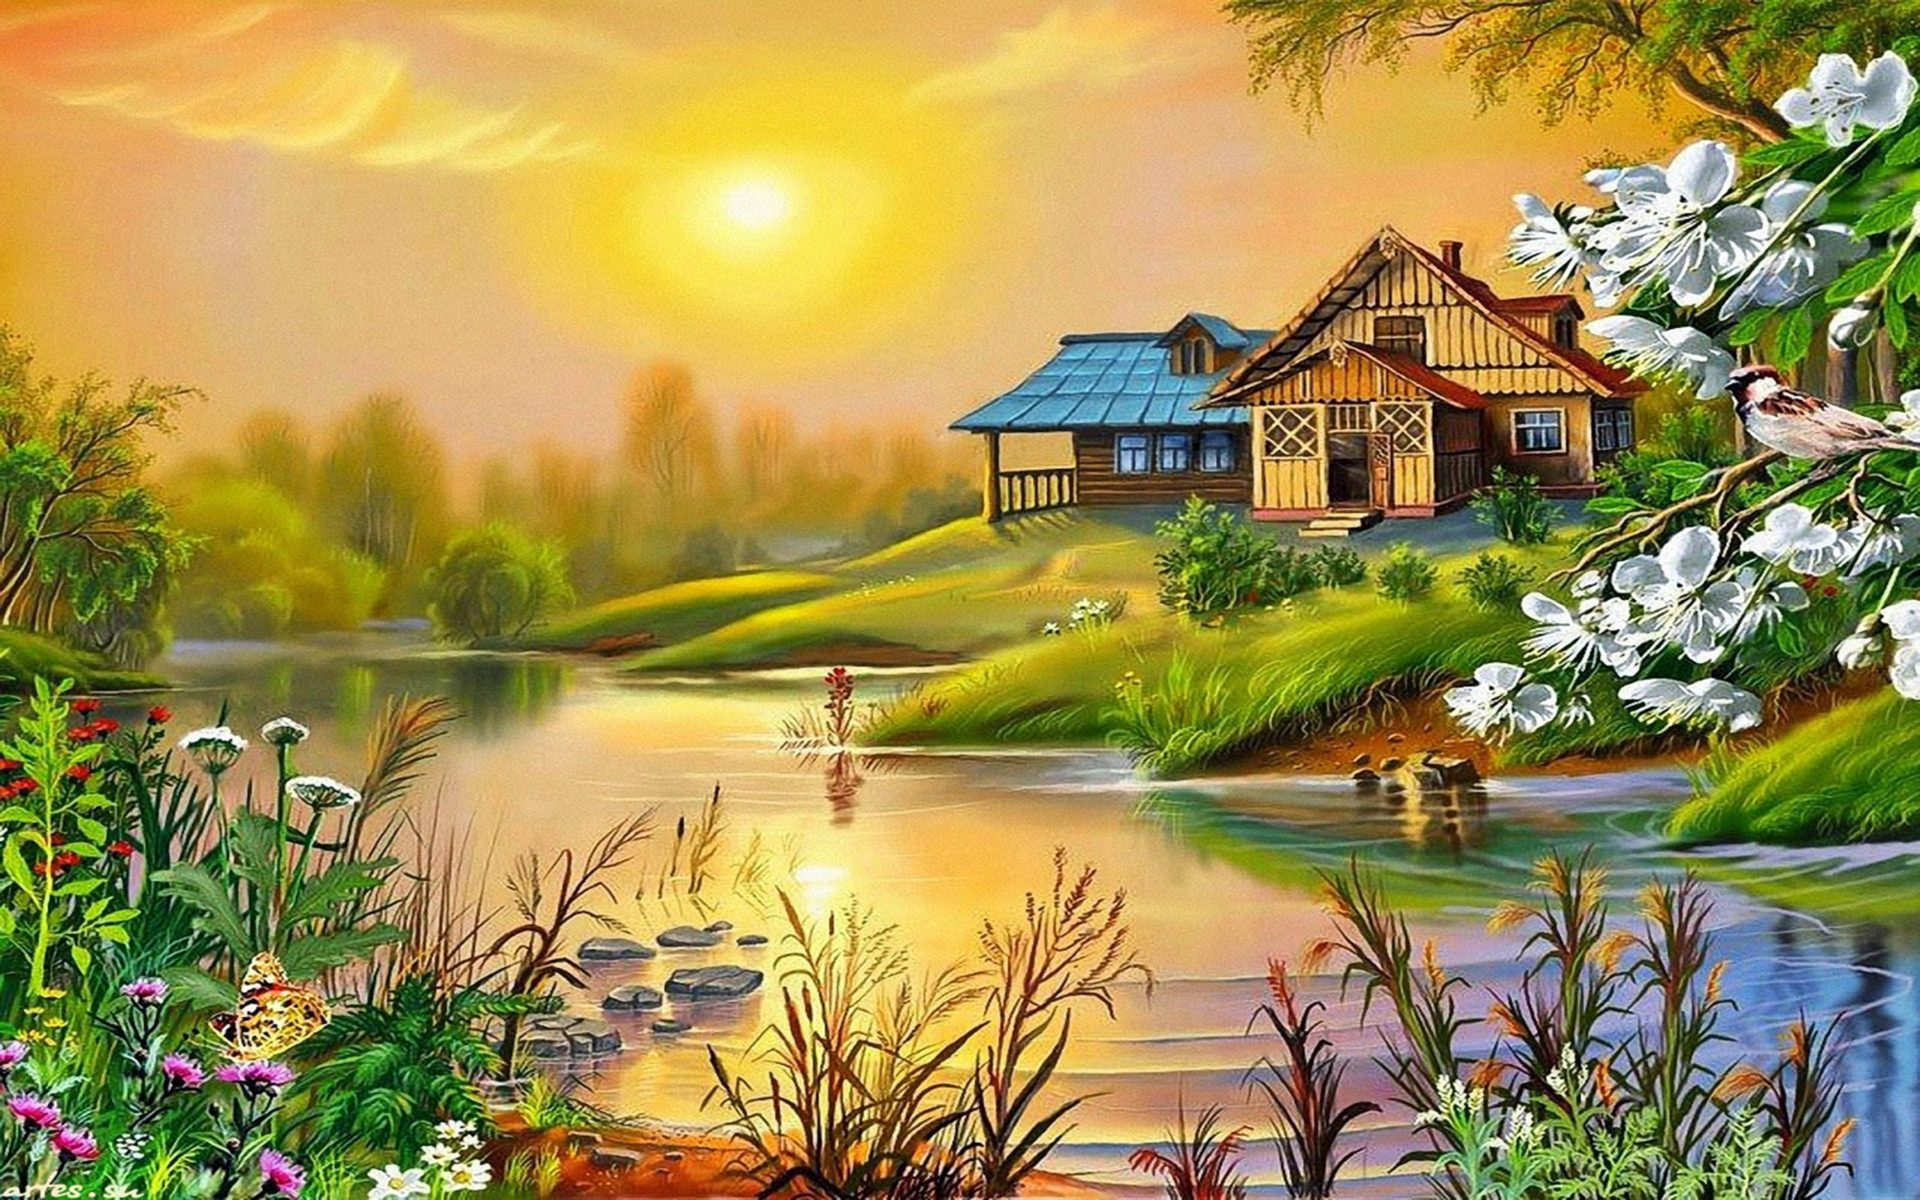 Best Disney Cars Wallpaper Spring Sun House River Bird Blossoming Trees 0534